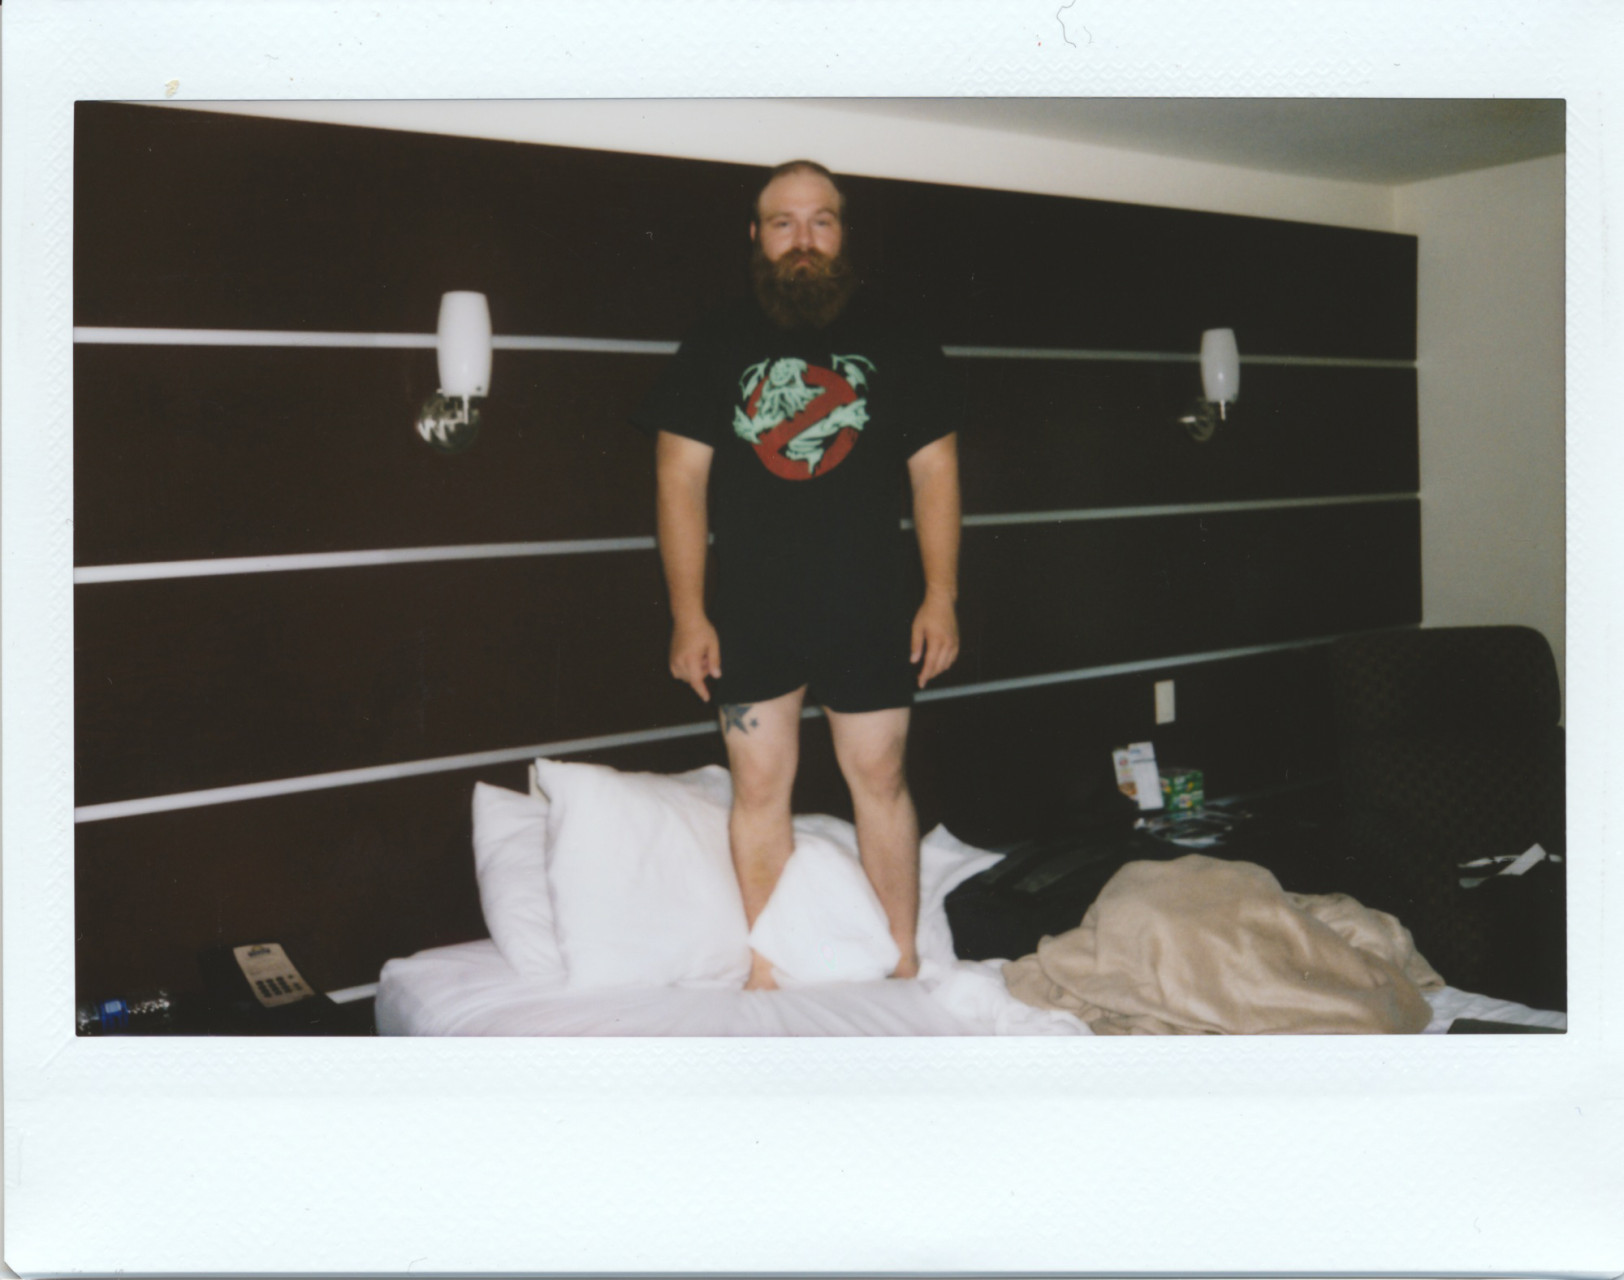 Polaroid-web_Scan-140813-00180018